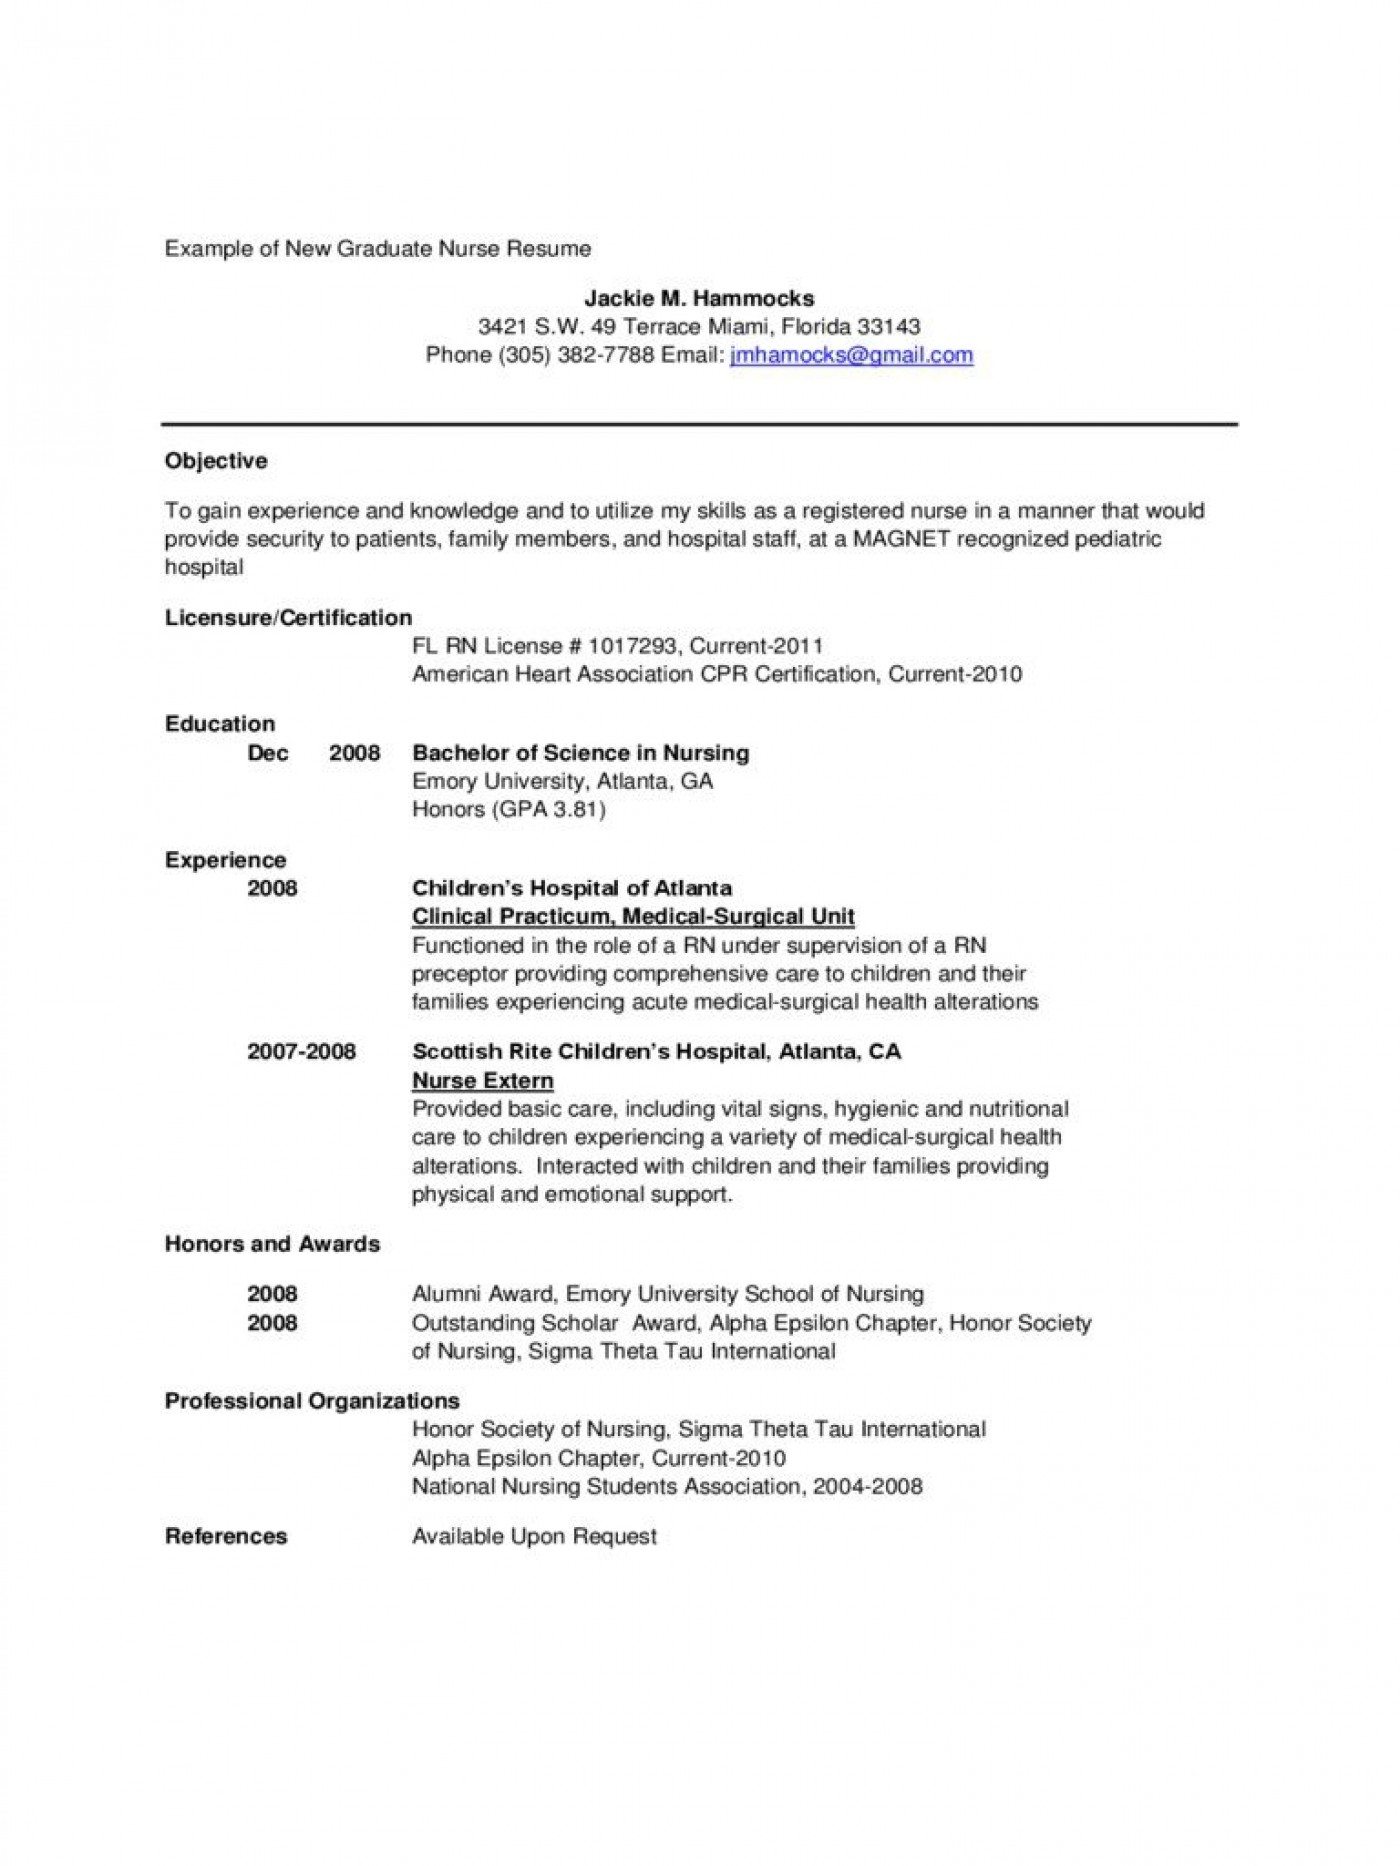 001 Archaicawful Resume Template For Nurse High Resolution  Sample Nursing Assistant With No Experience Rn' Free1400